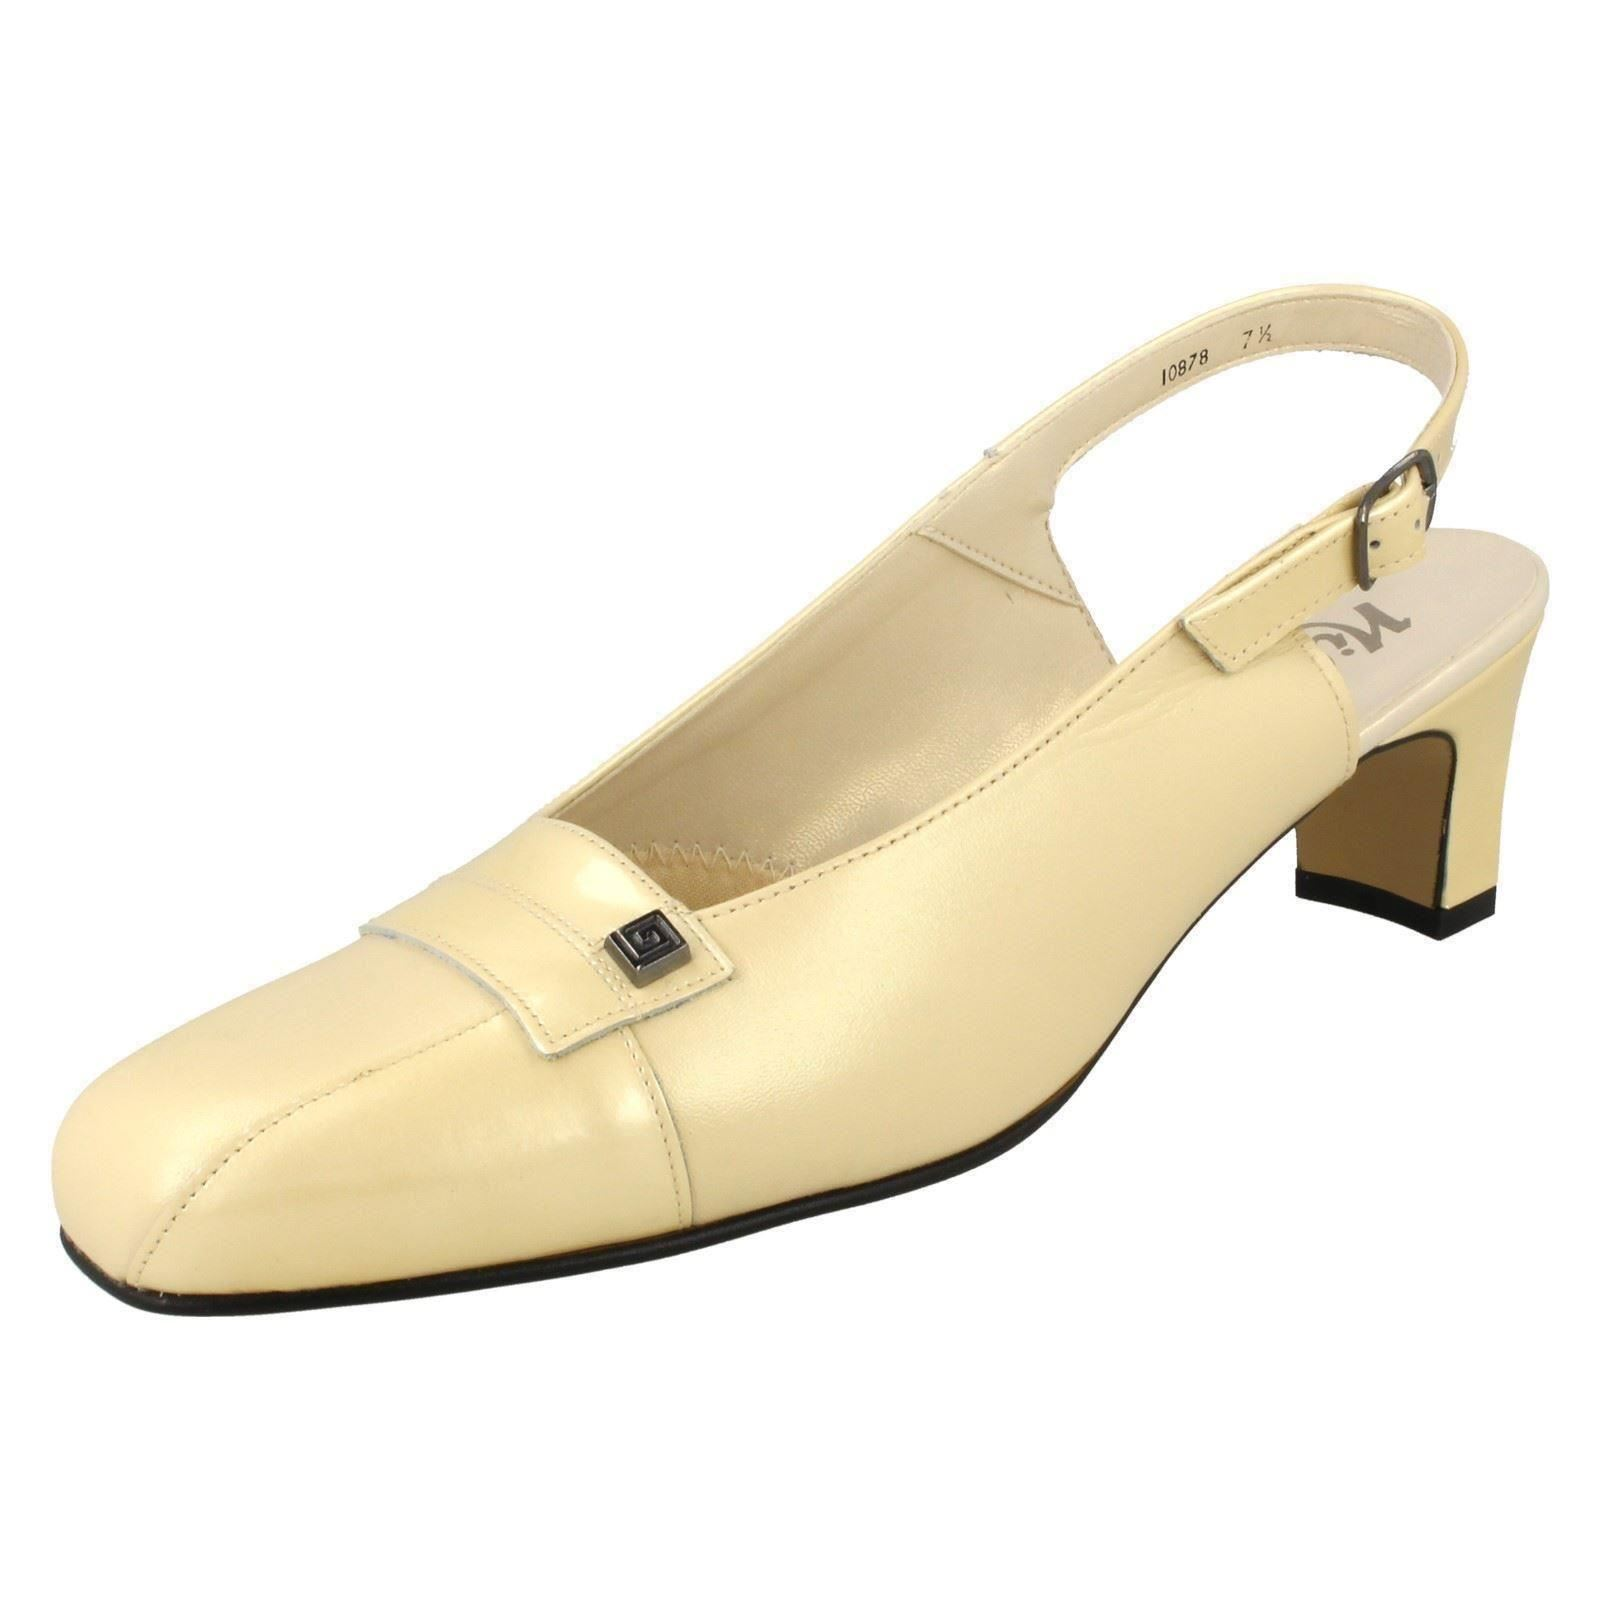 3f6b9b06a59 Ladies Nil Simile Narrow Fitting Slingback Shoes Delaware Light Gold Pearl  (ivory) UK 5 Narrow. About this product. Picture 1 of 10  Picture 2 of 10  ...